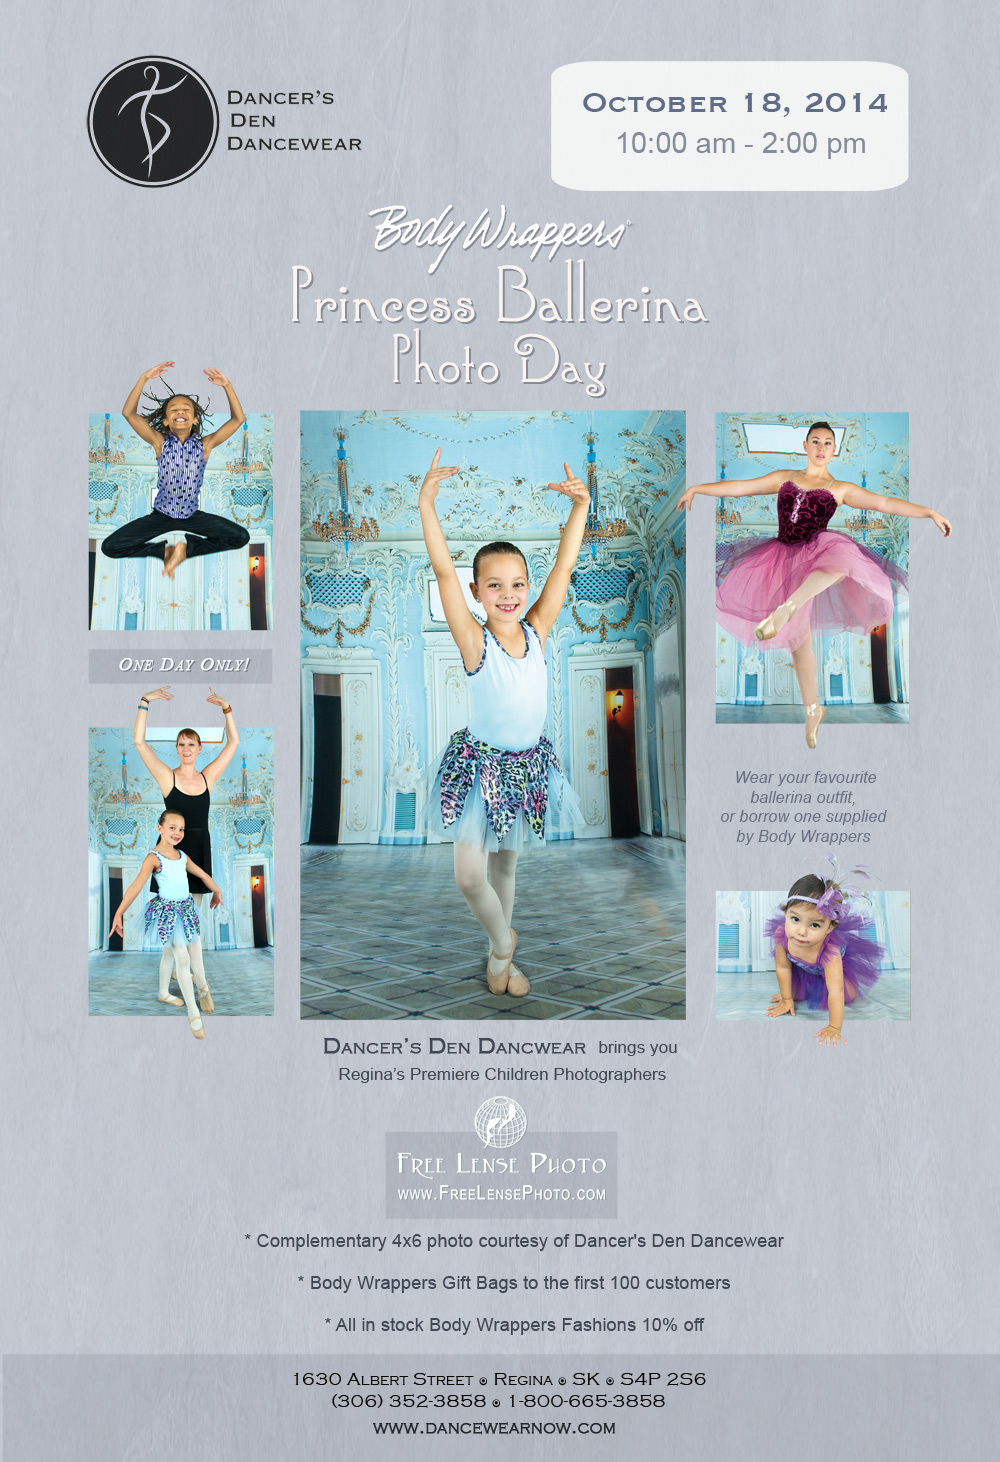 dancers-den-princess-ballerina-event.jpg